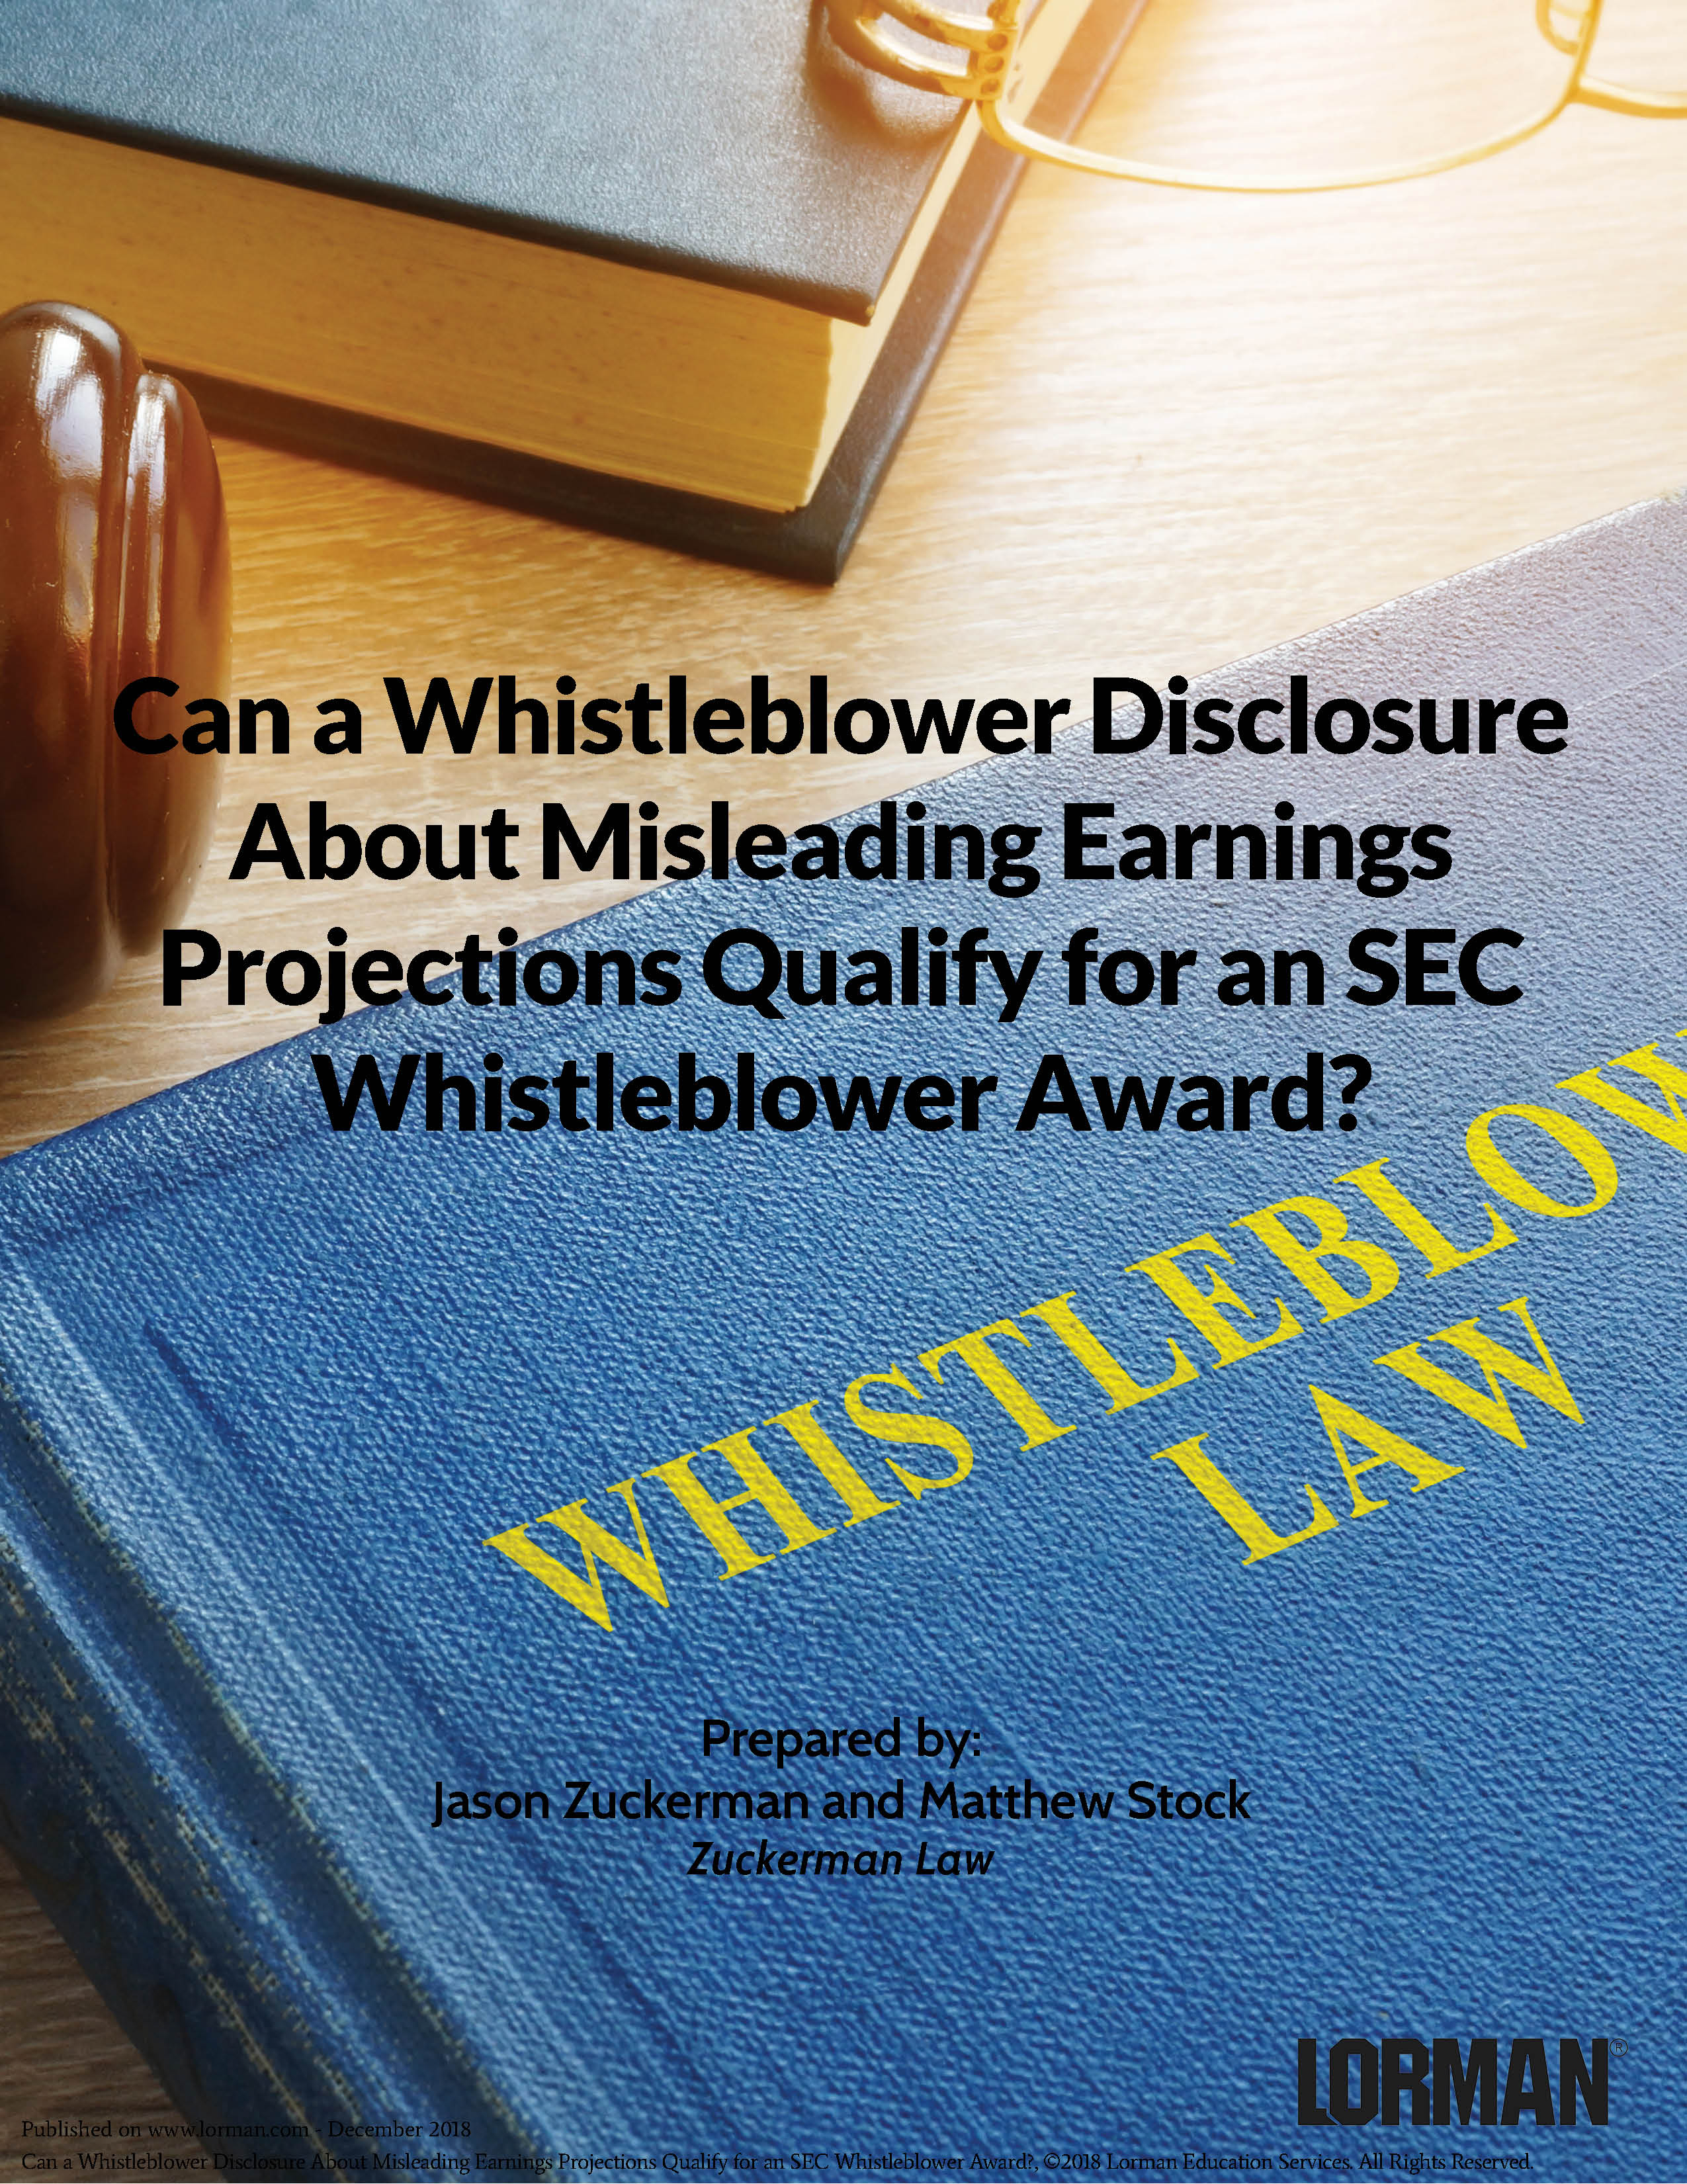 Can Disclosure About Misleading Earnings Projections Qualify for an SEC Whistleblower Award?